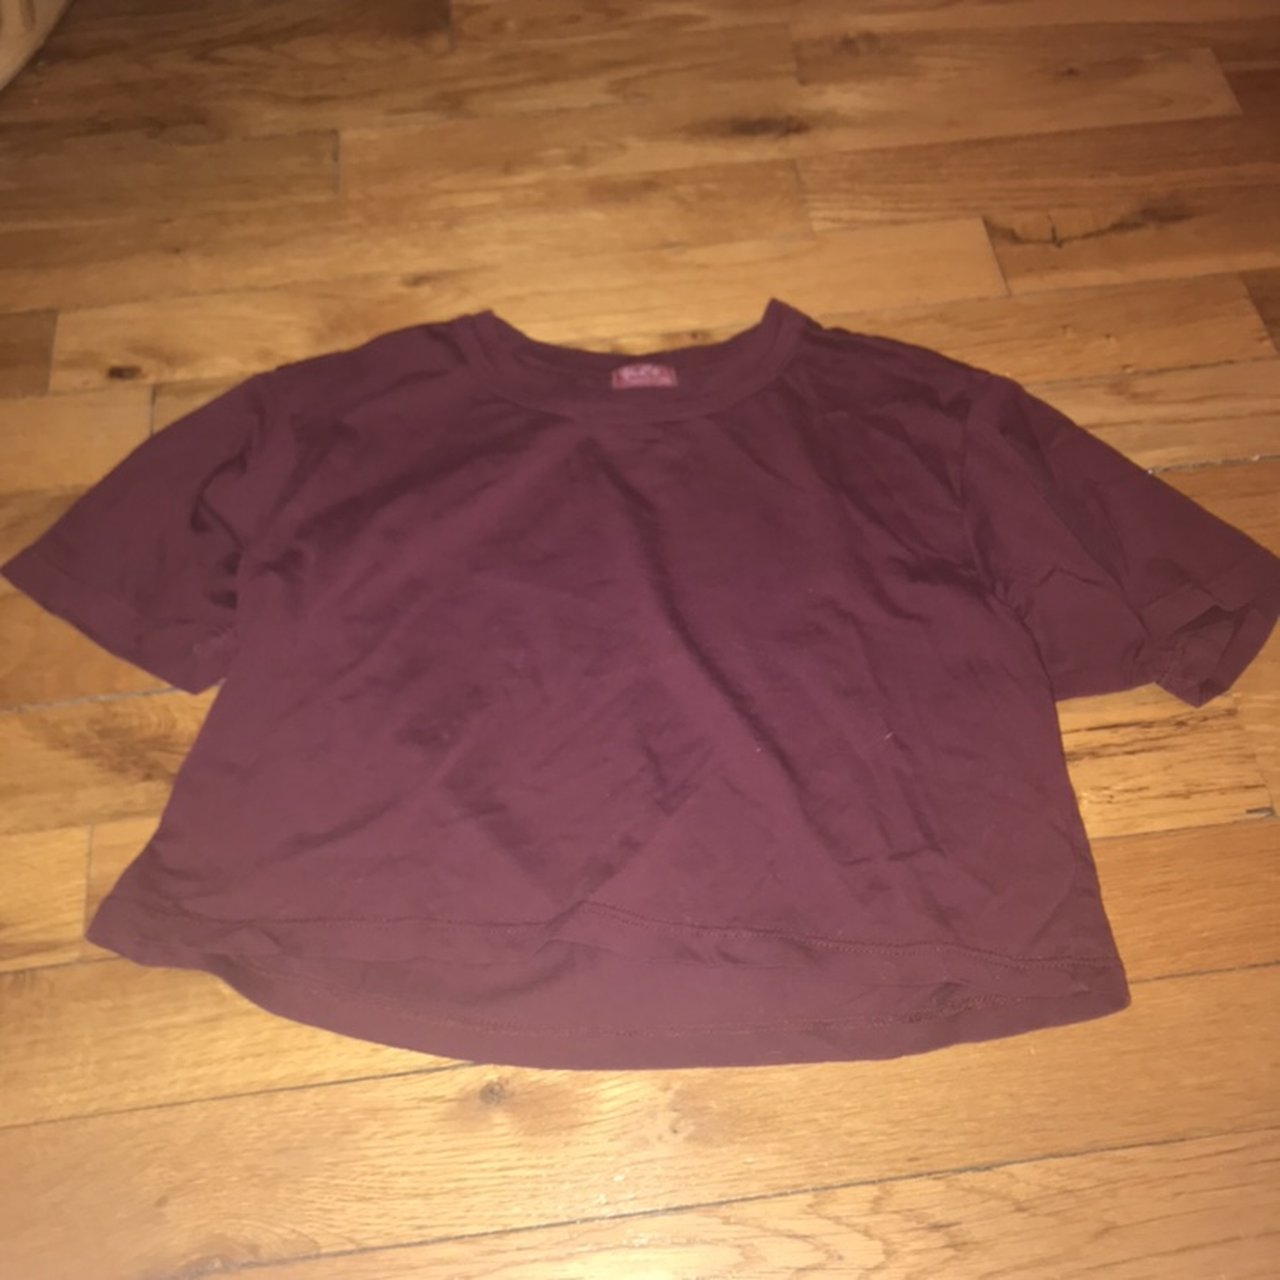 4a76c784d2eca9 BRANDY MELVILLE NWOT MAROON PENNY TOP! great condition